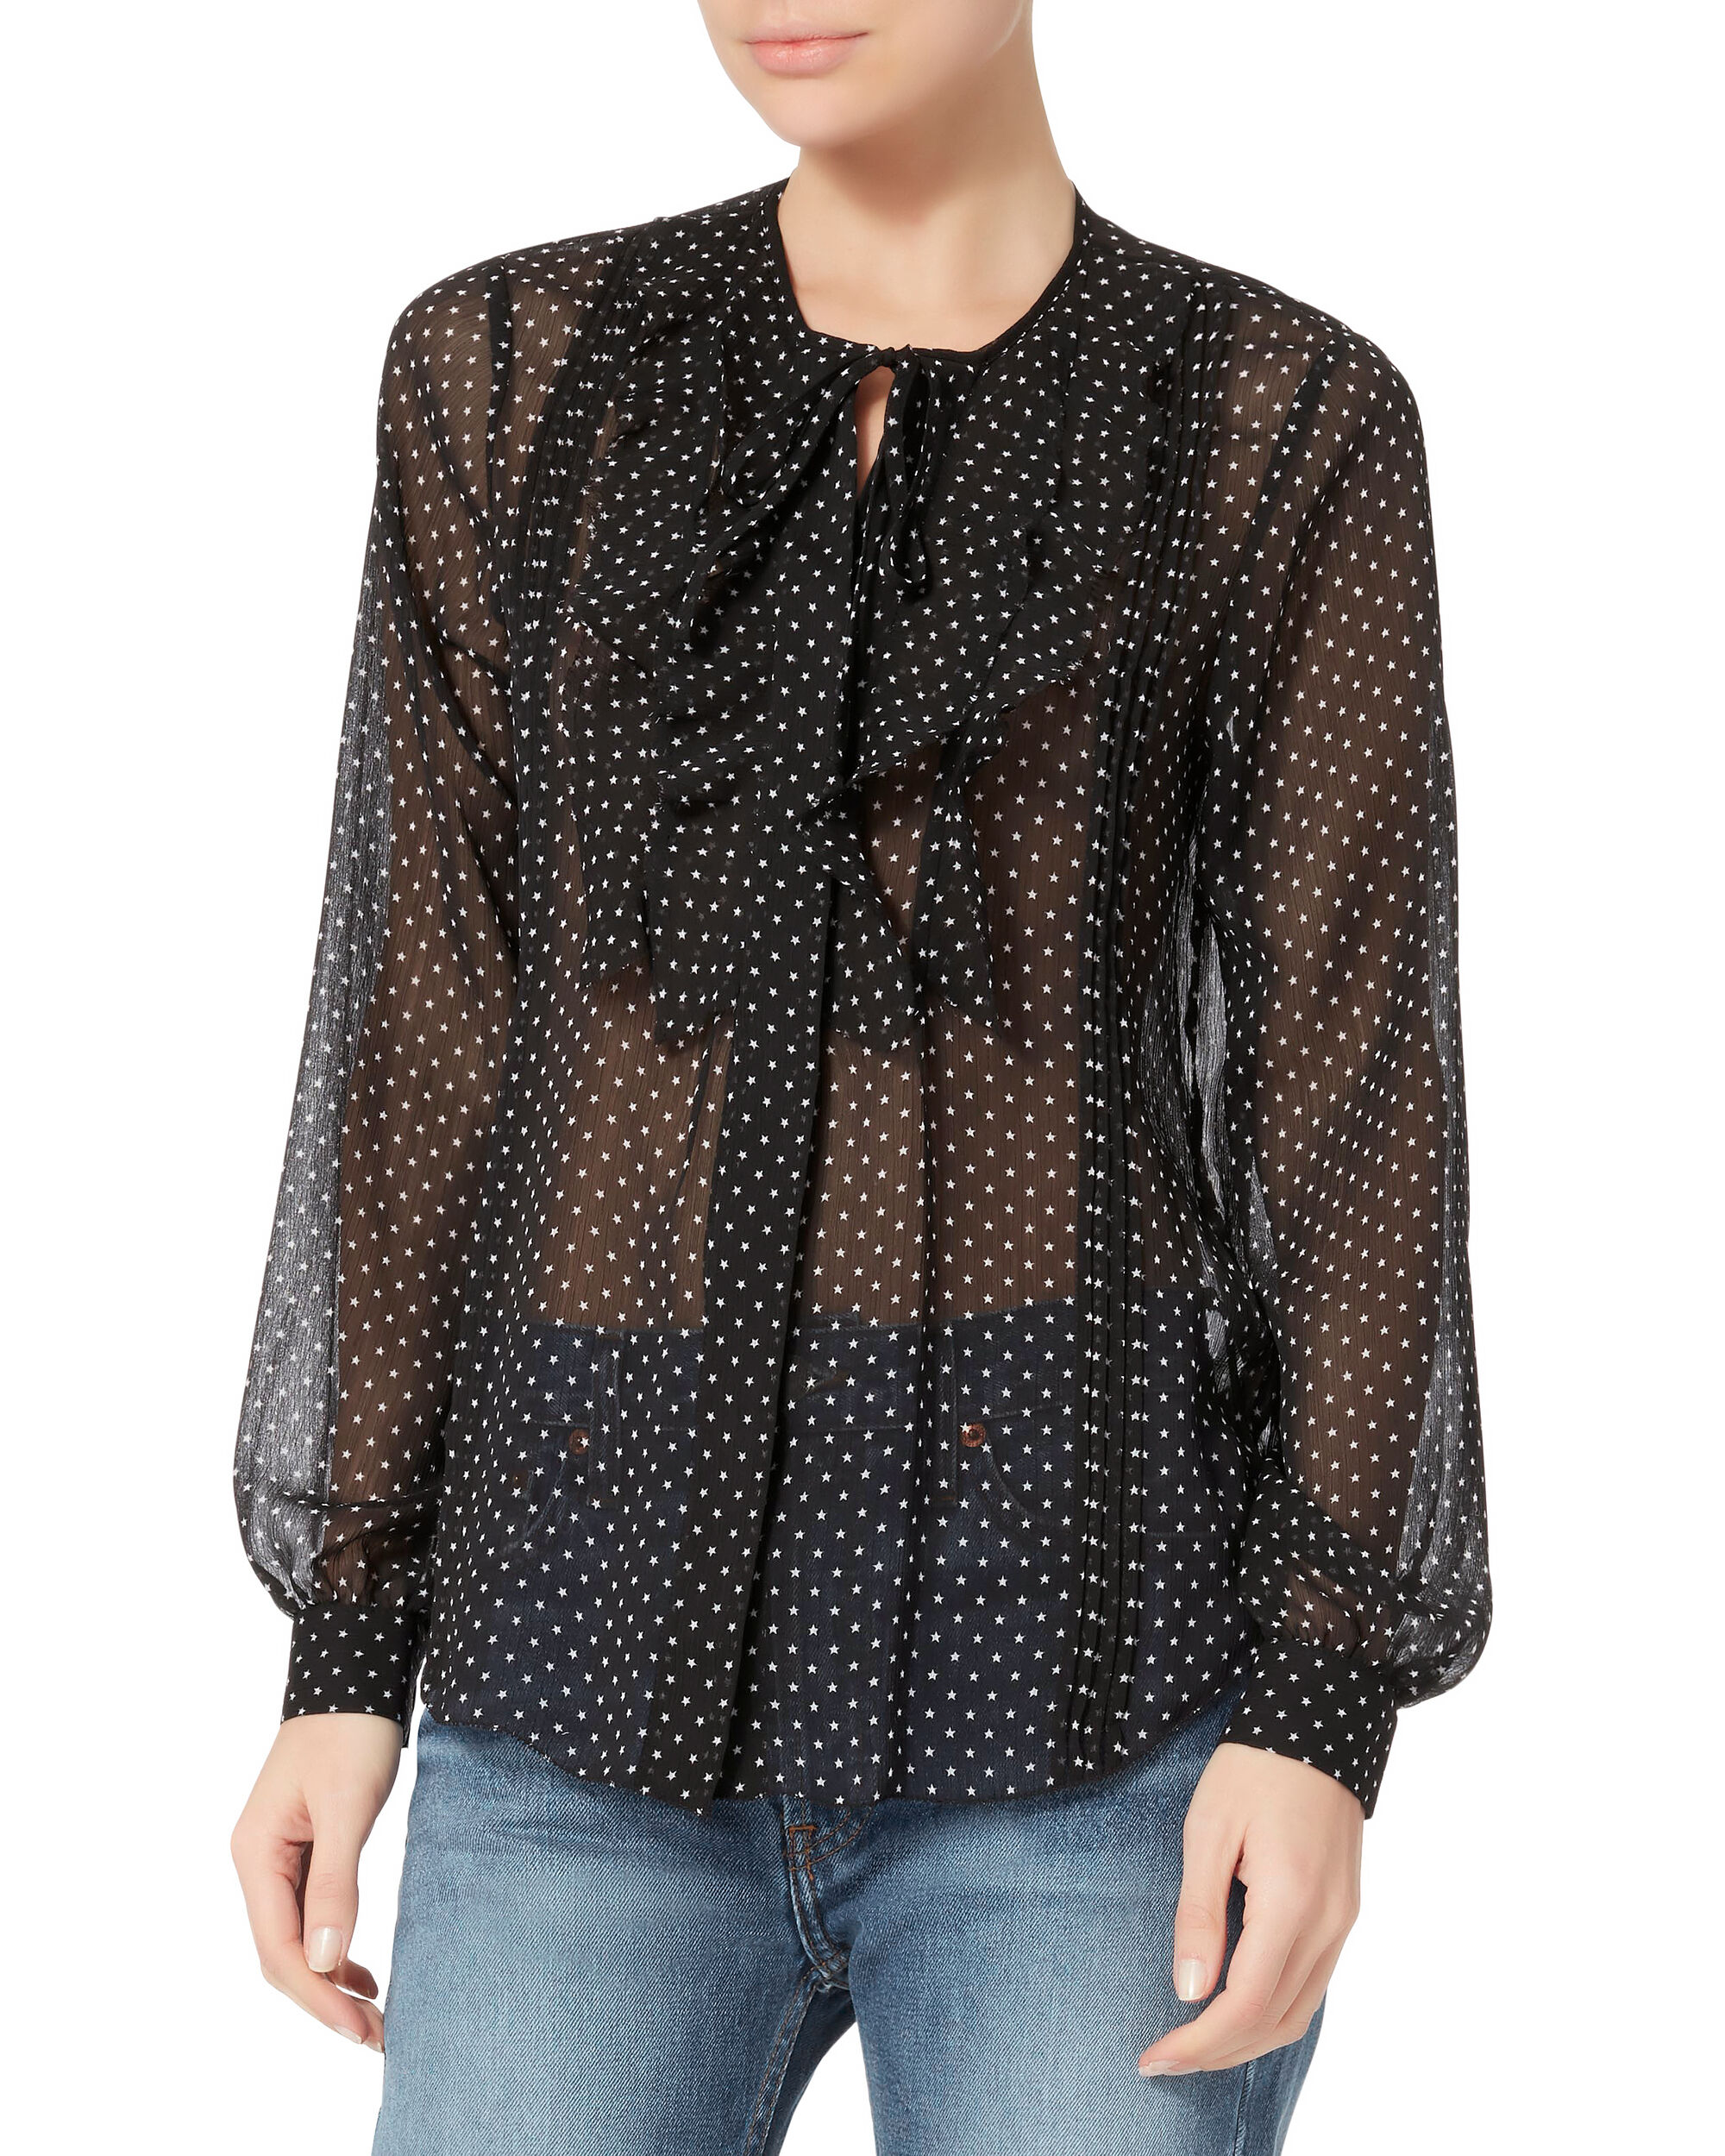 Tabitha Star Blouse, PRI-DOT, hi-res